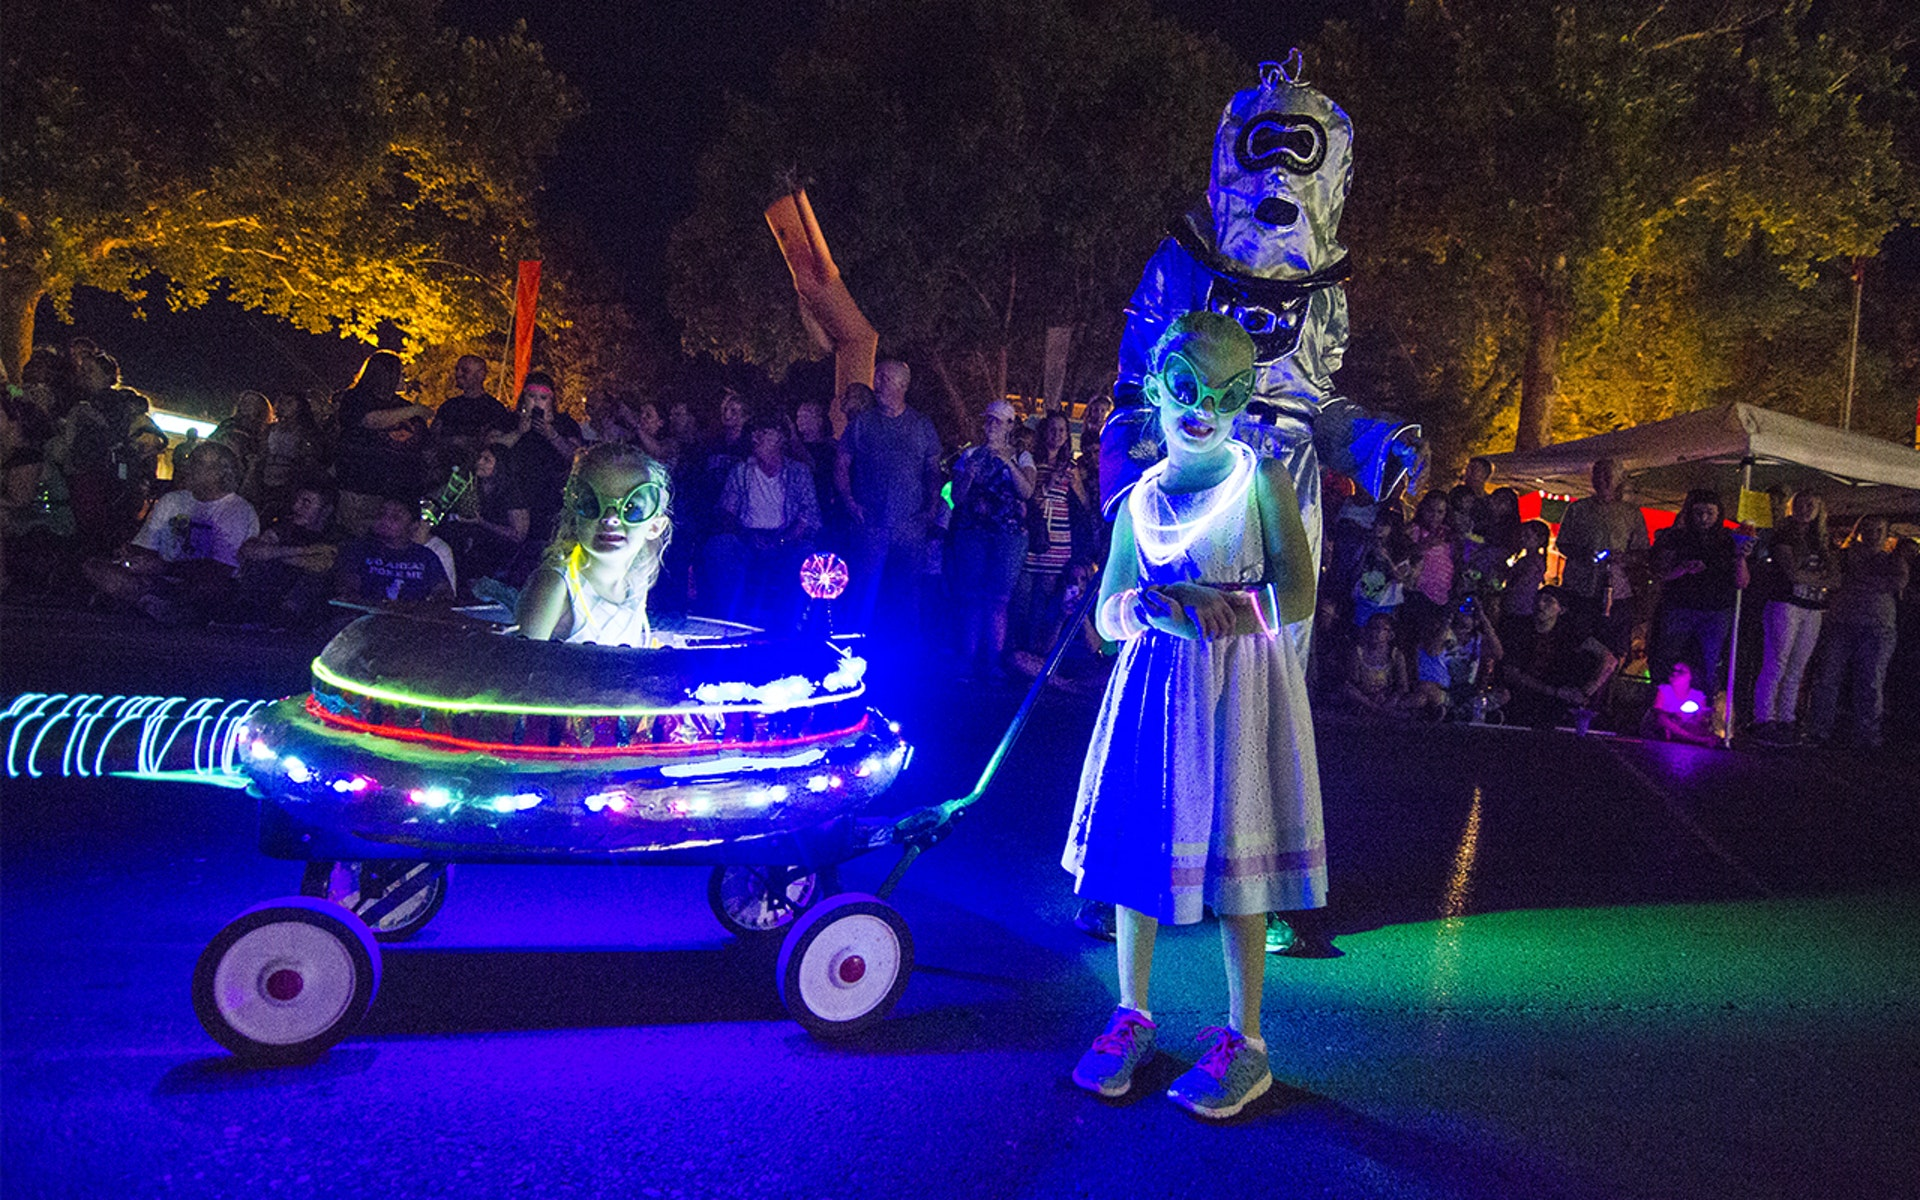 The expression on the small girl in the UFO wagon encapsulates how I felt about most of the festival.